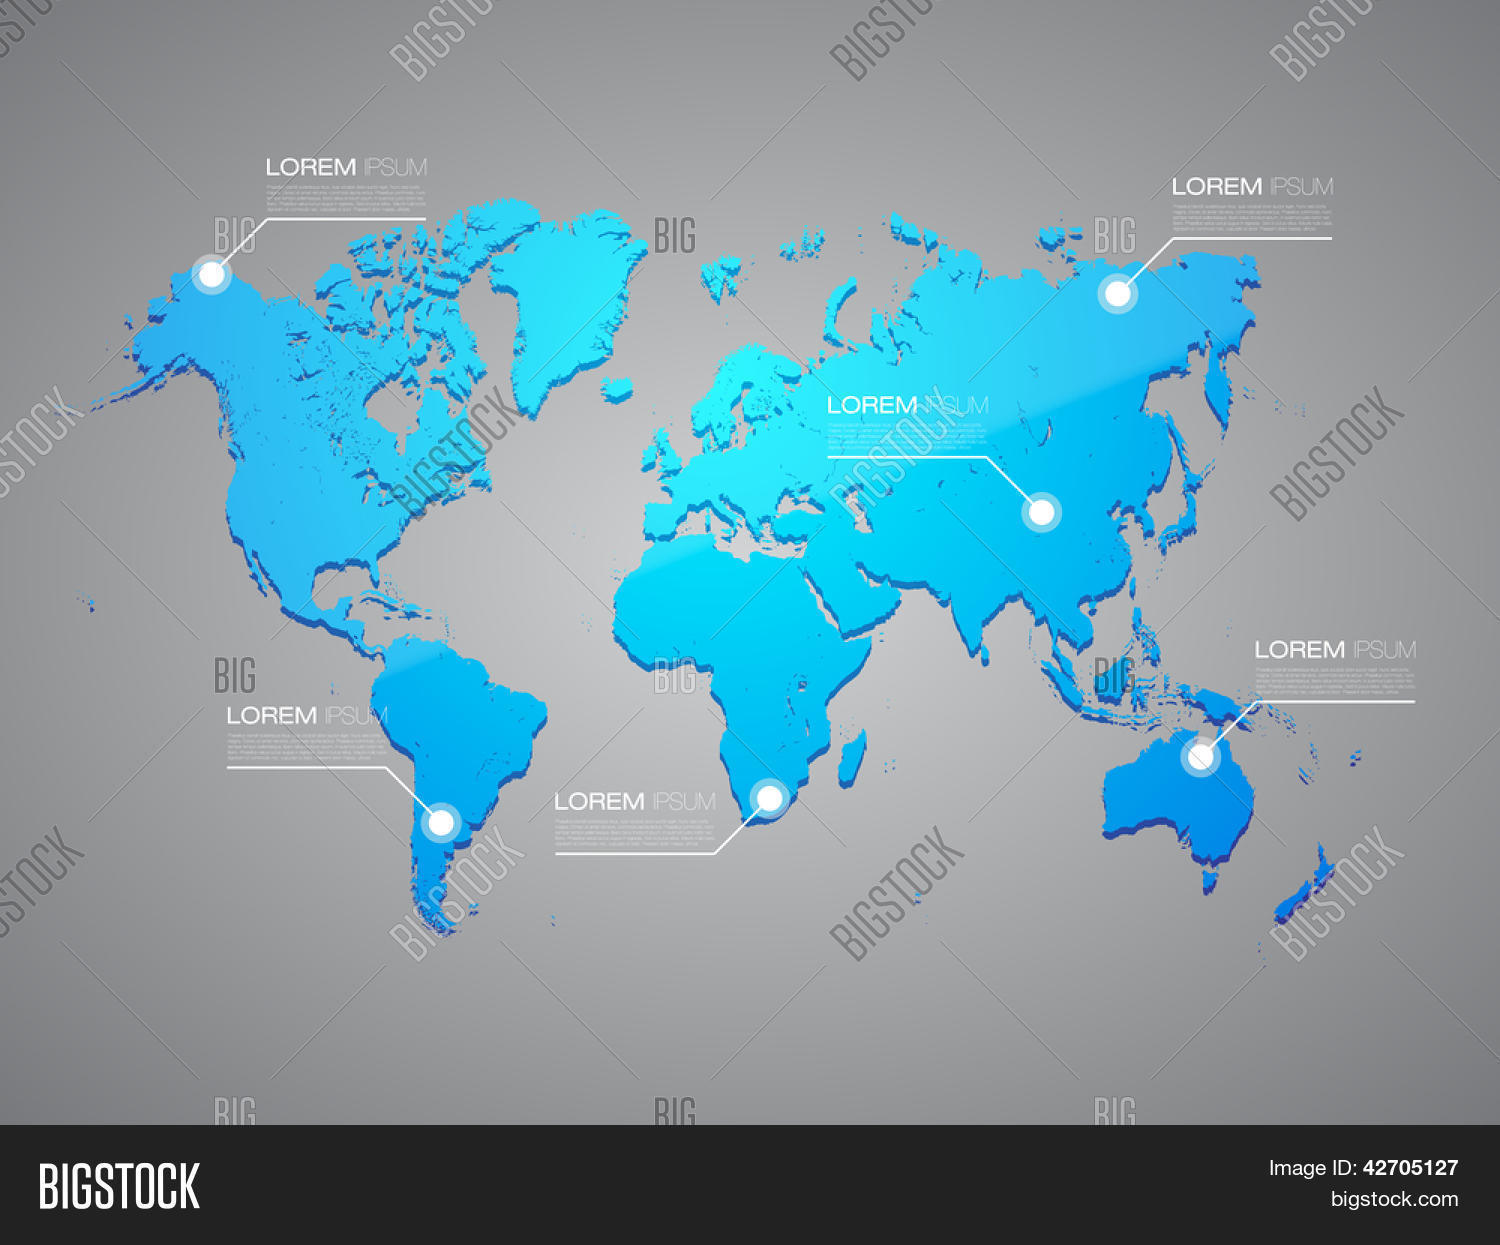 Blue world map vector photo free trial bigstock blue world map with infographic elements eps10 editable vector background gumiabroncs Gallery